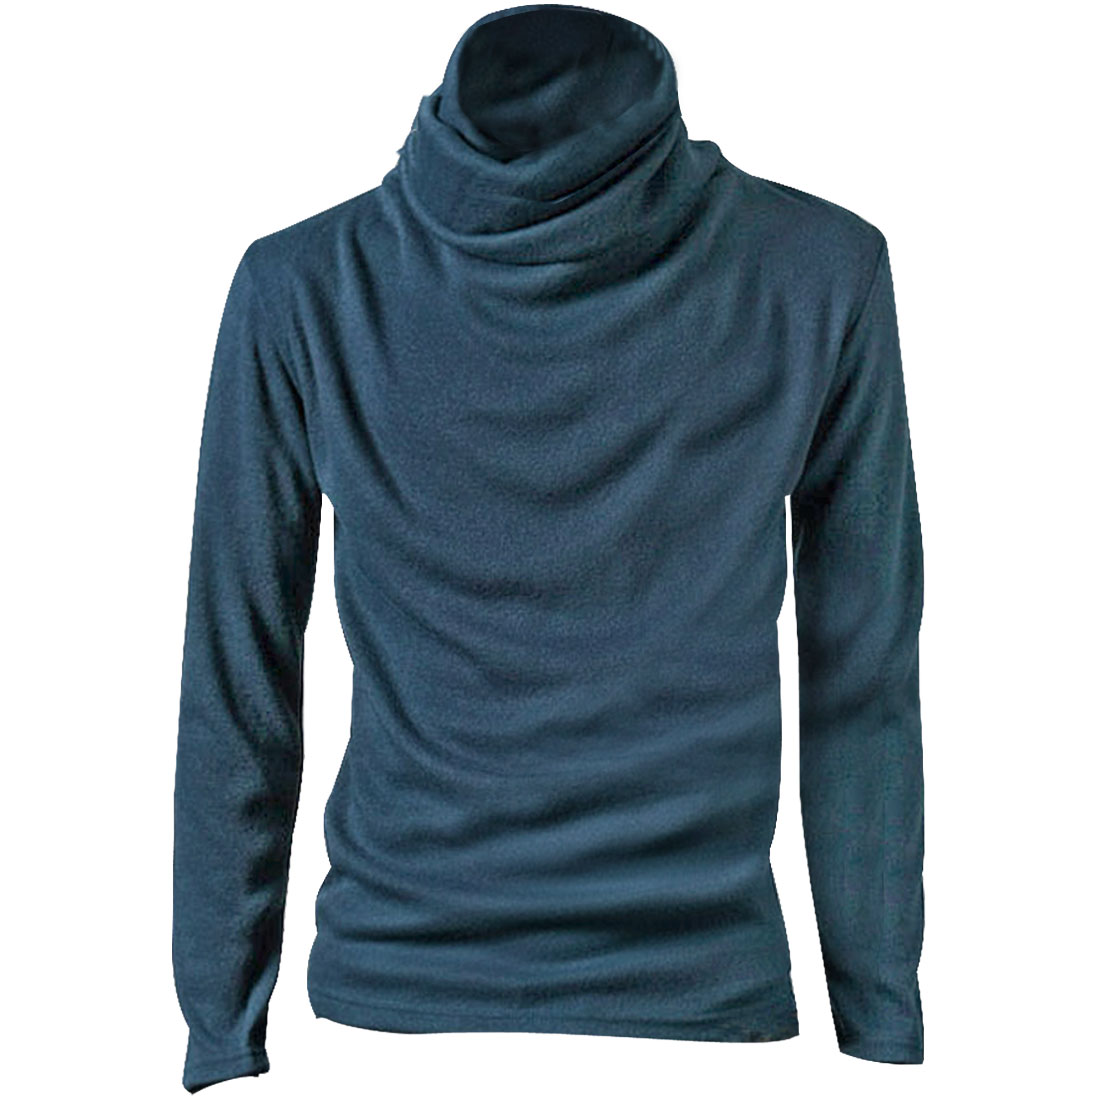 Mens Steel Blue NEW Long Sleeve Pullover Simple Design Spring Top Shirt S